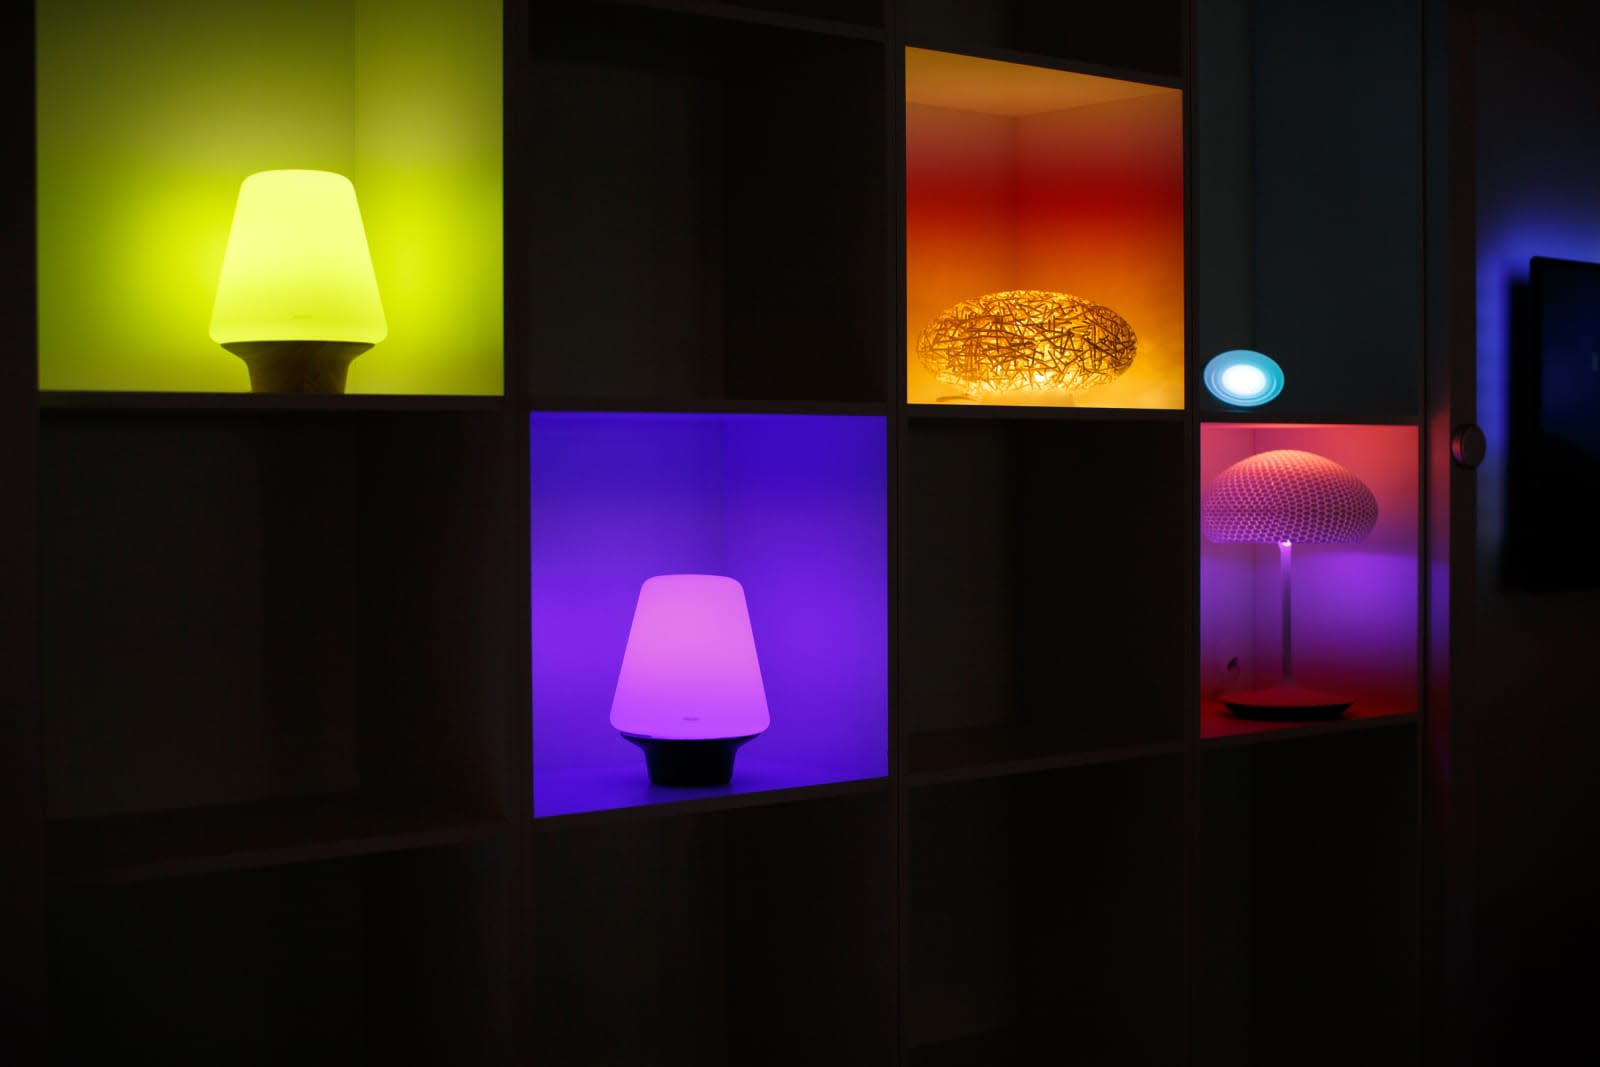 Philips Hue lights will sync with music and games on your PC